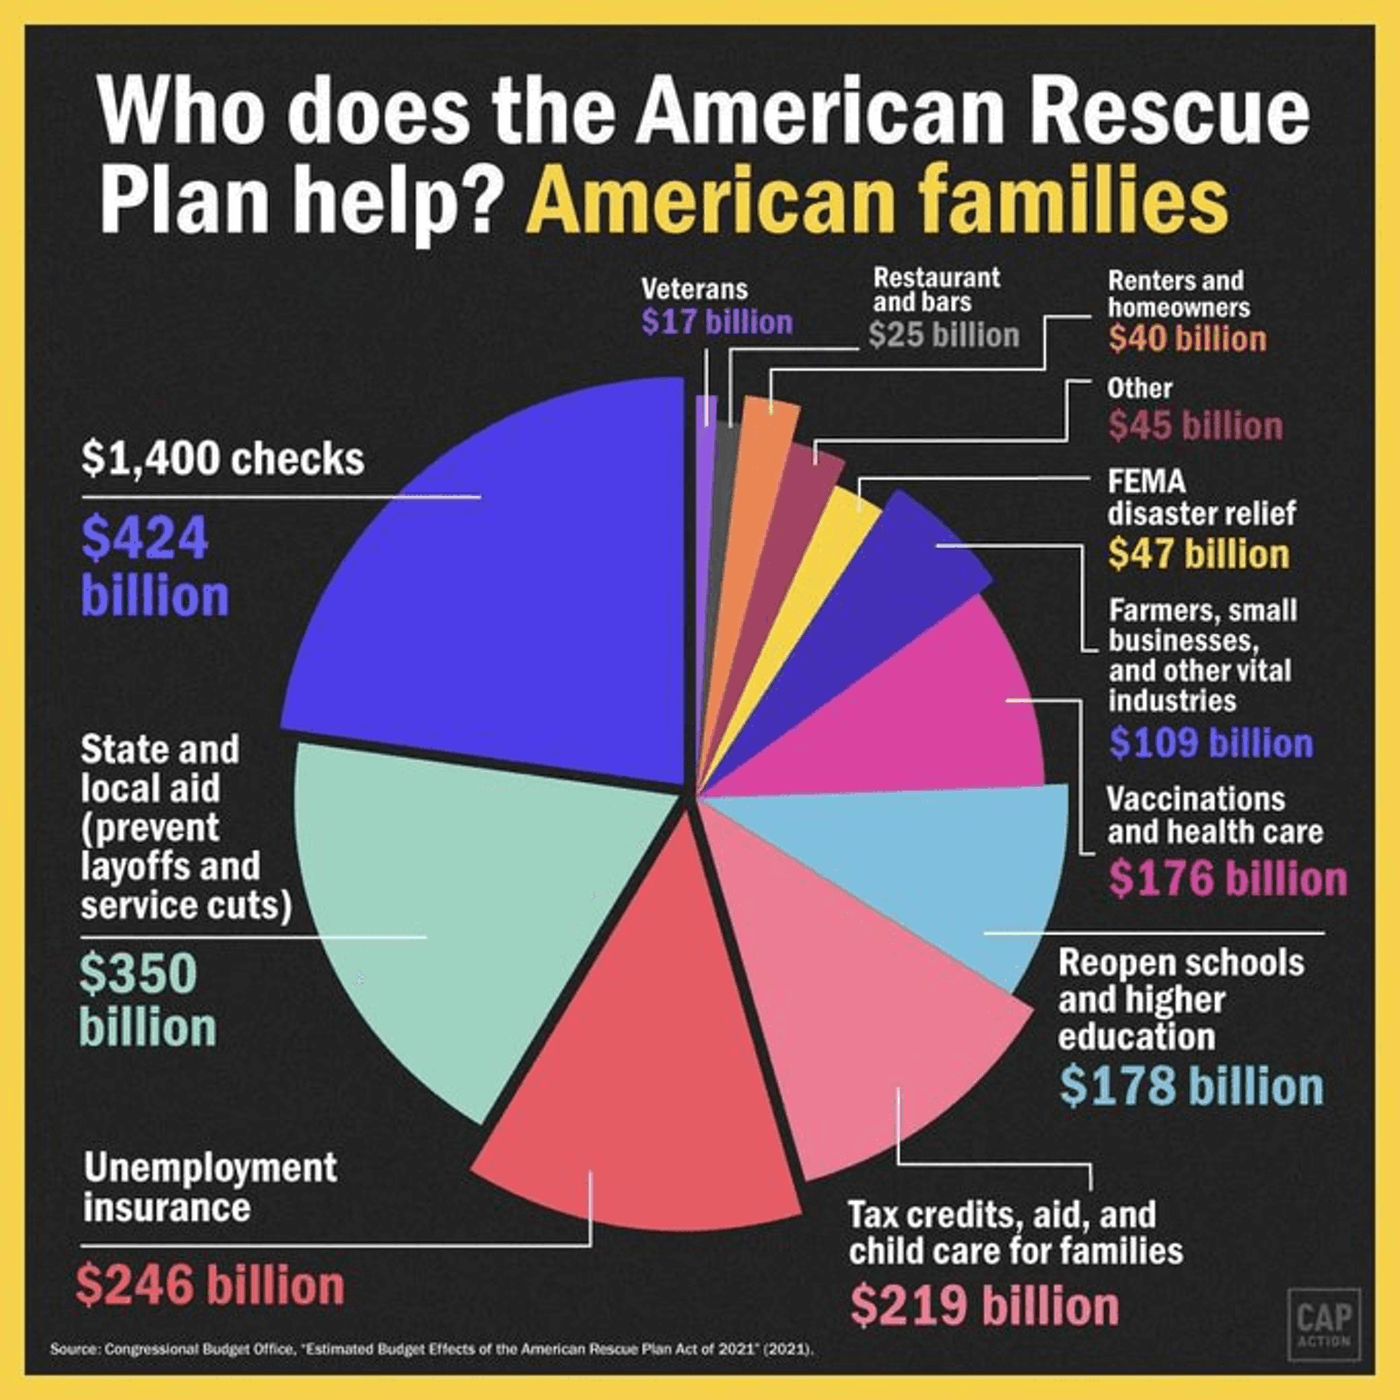 Who Does the American Rescue Plan Help? American Families